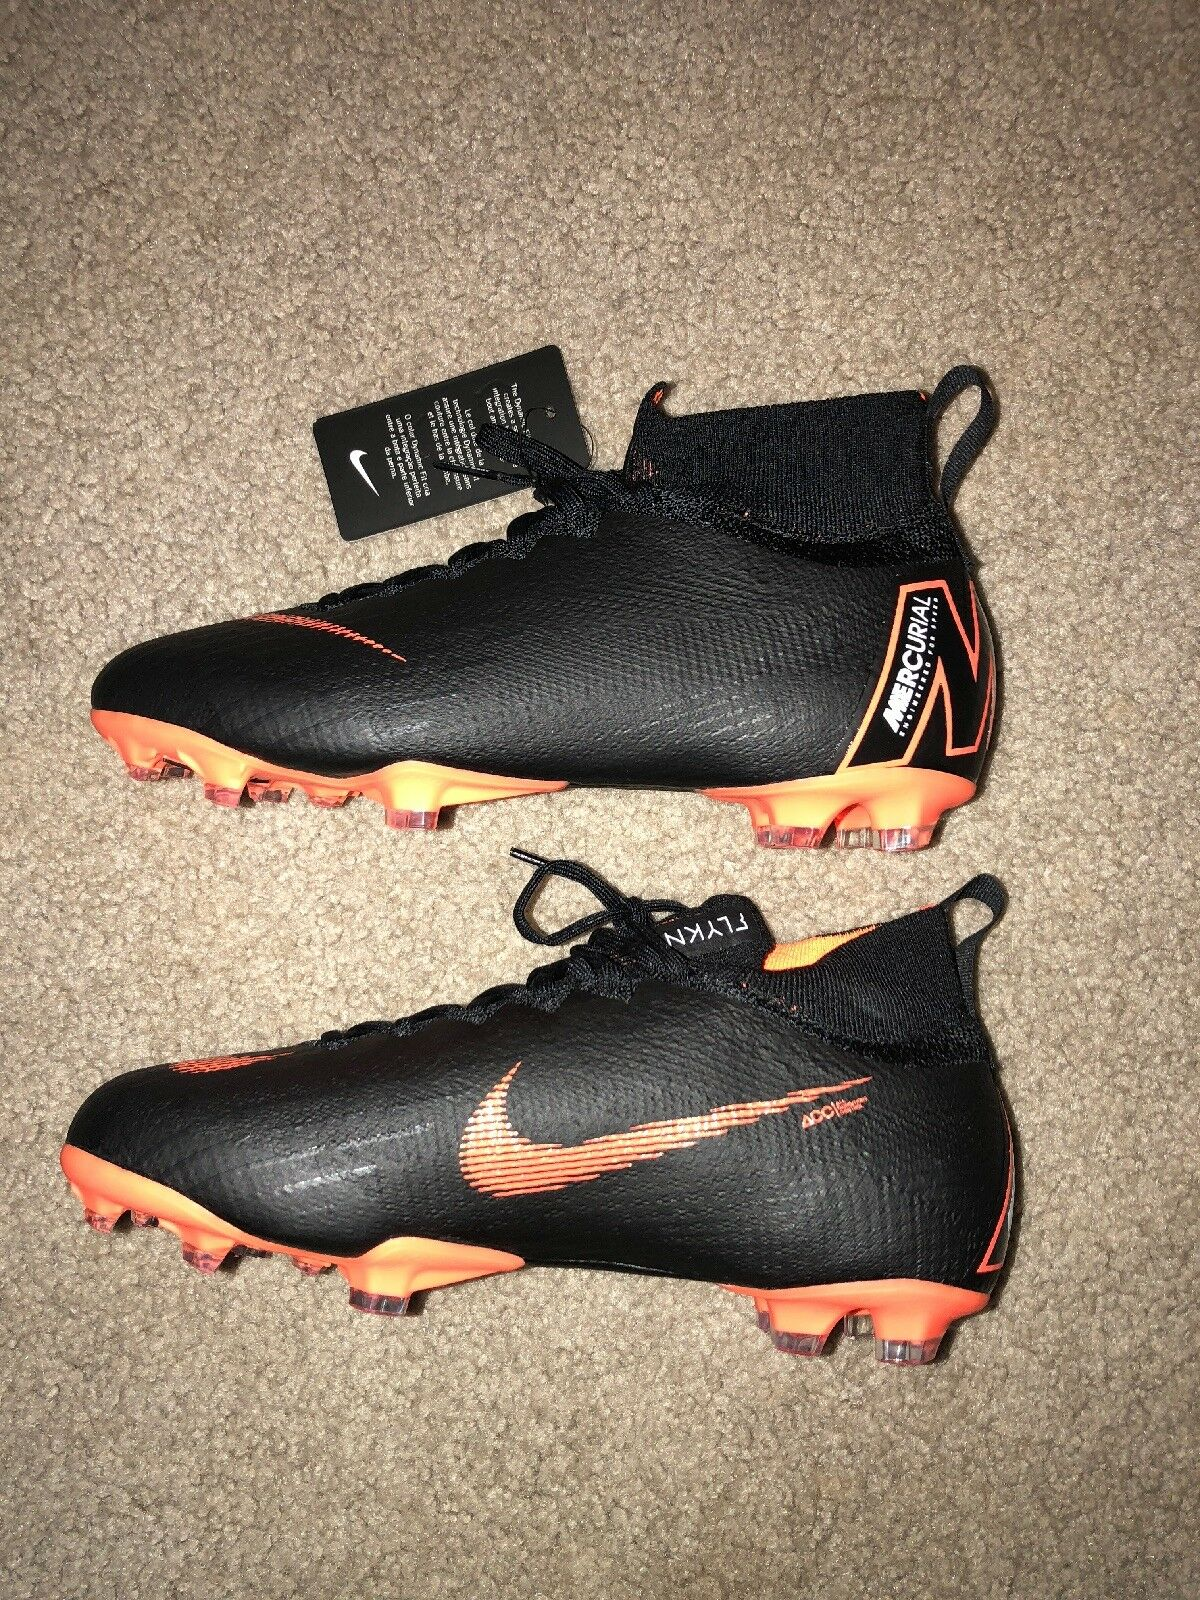 AH7340-081 Nike Mercurial Flyknit Soccer Cleat. Sz 4.5 Youth